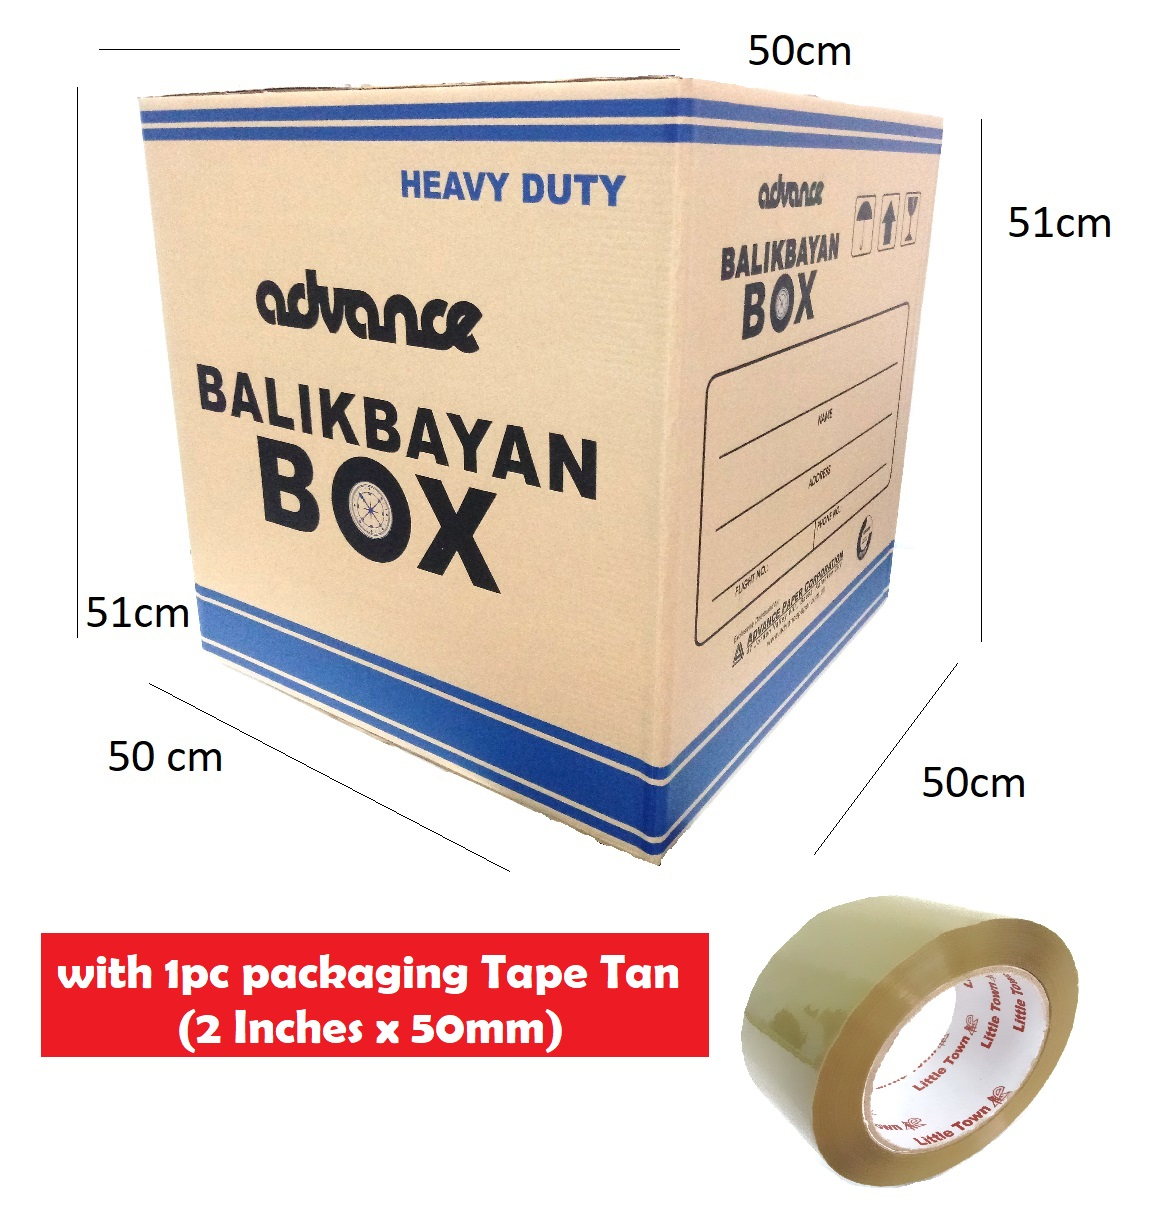 10 Pieces Heavy Duty Balikbayan Box Storage Box with 1pc packaging tape tan  2